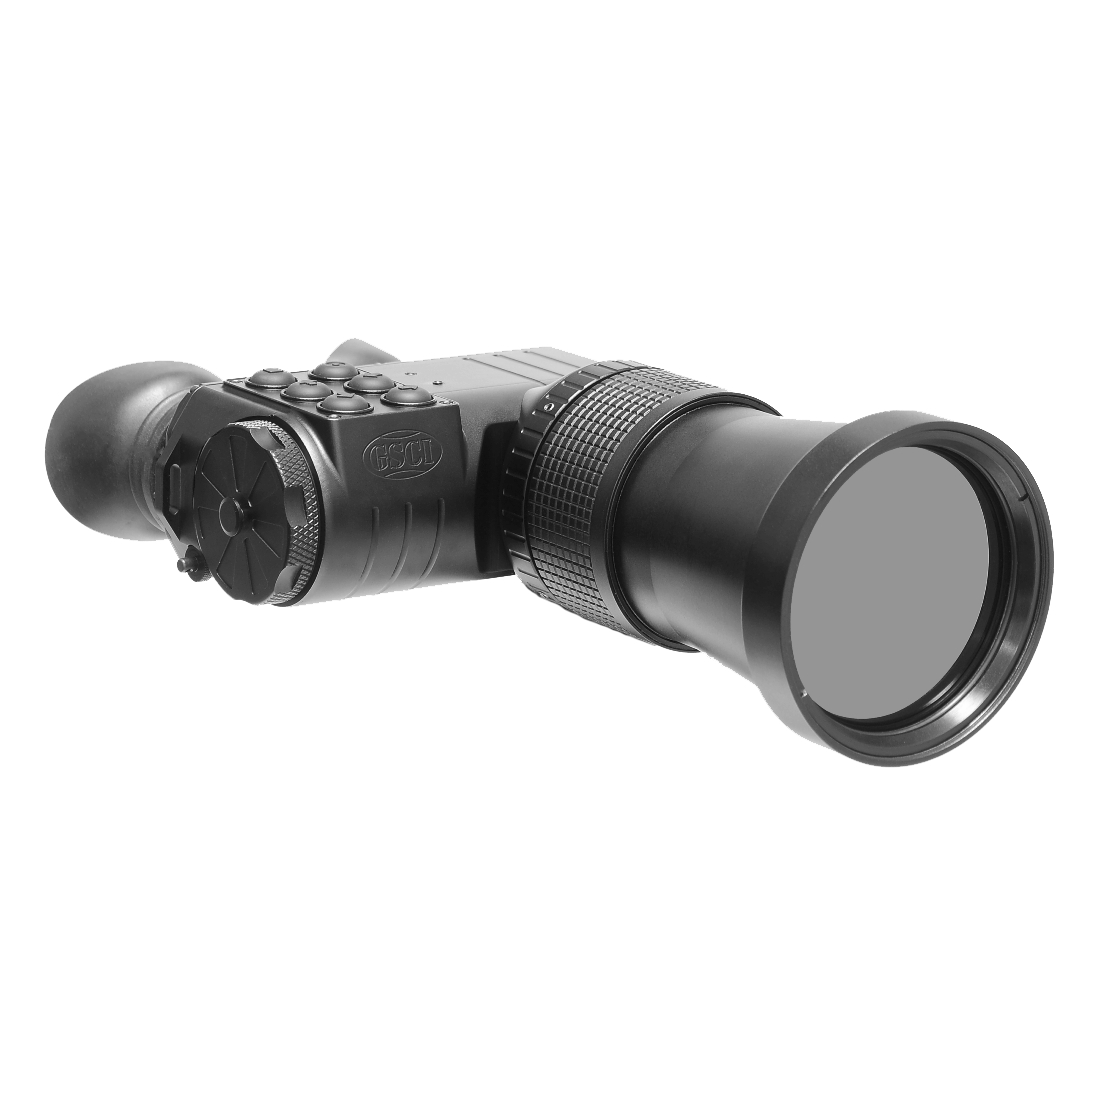 UNITEC-B Long Range Thermal Binoculars